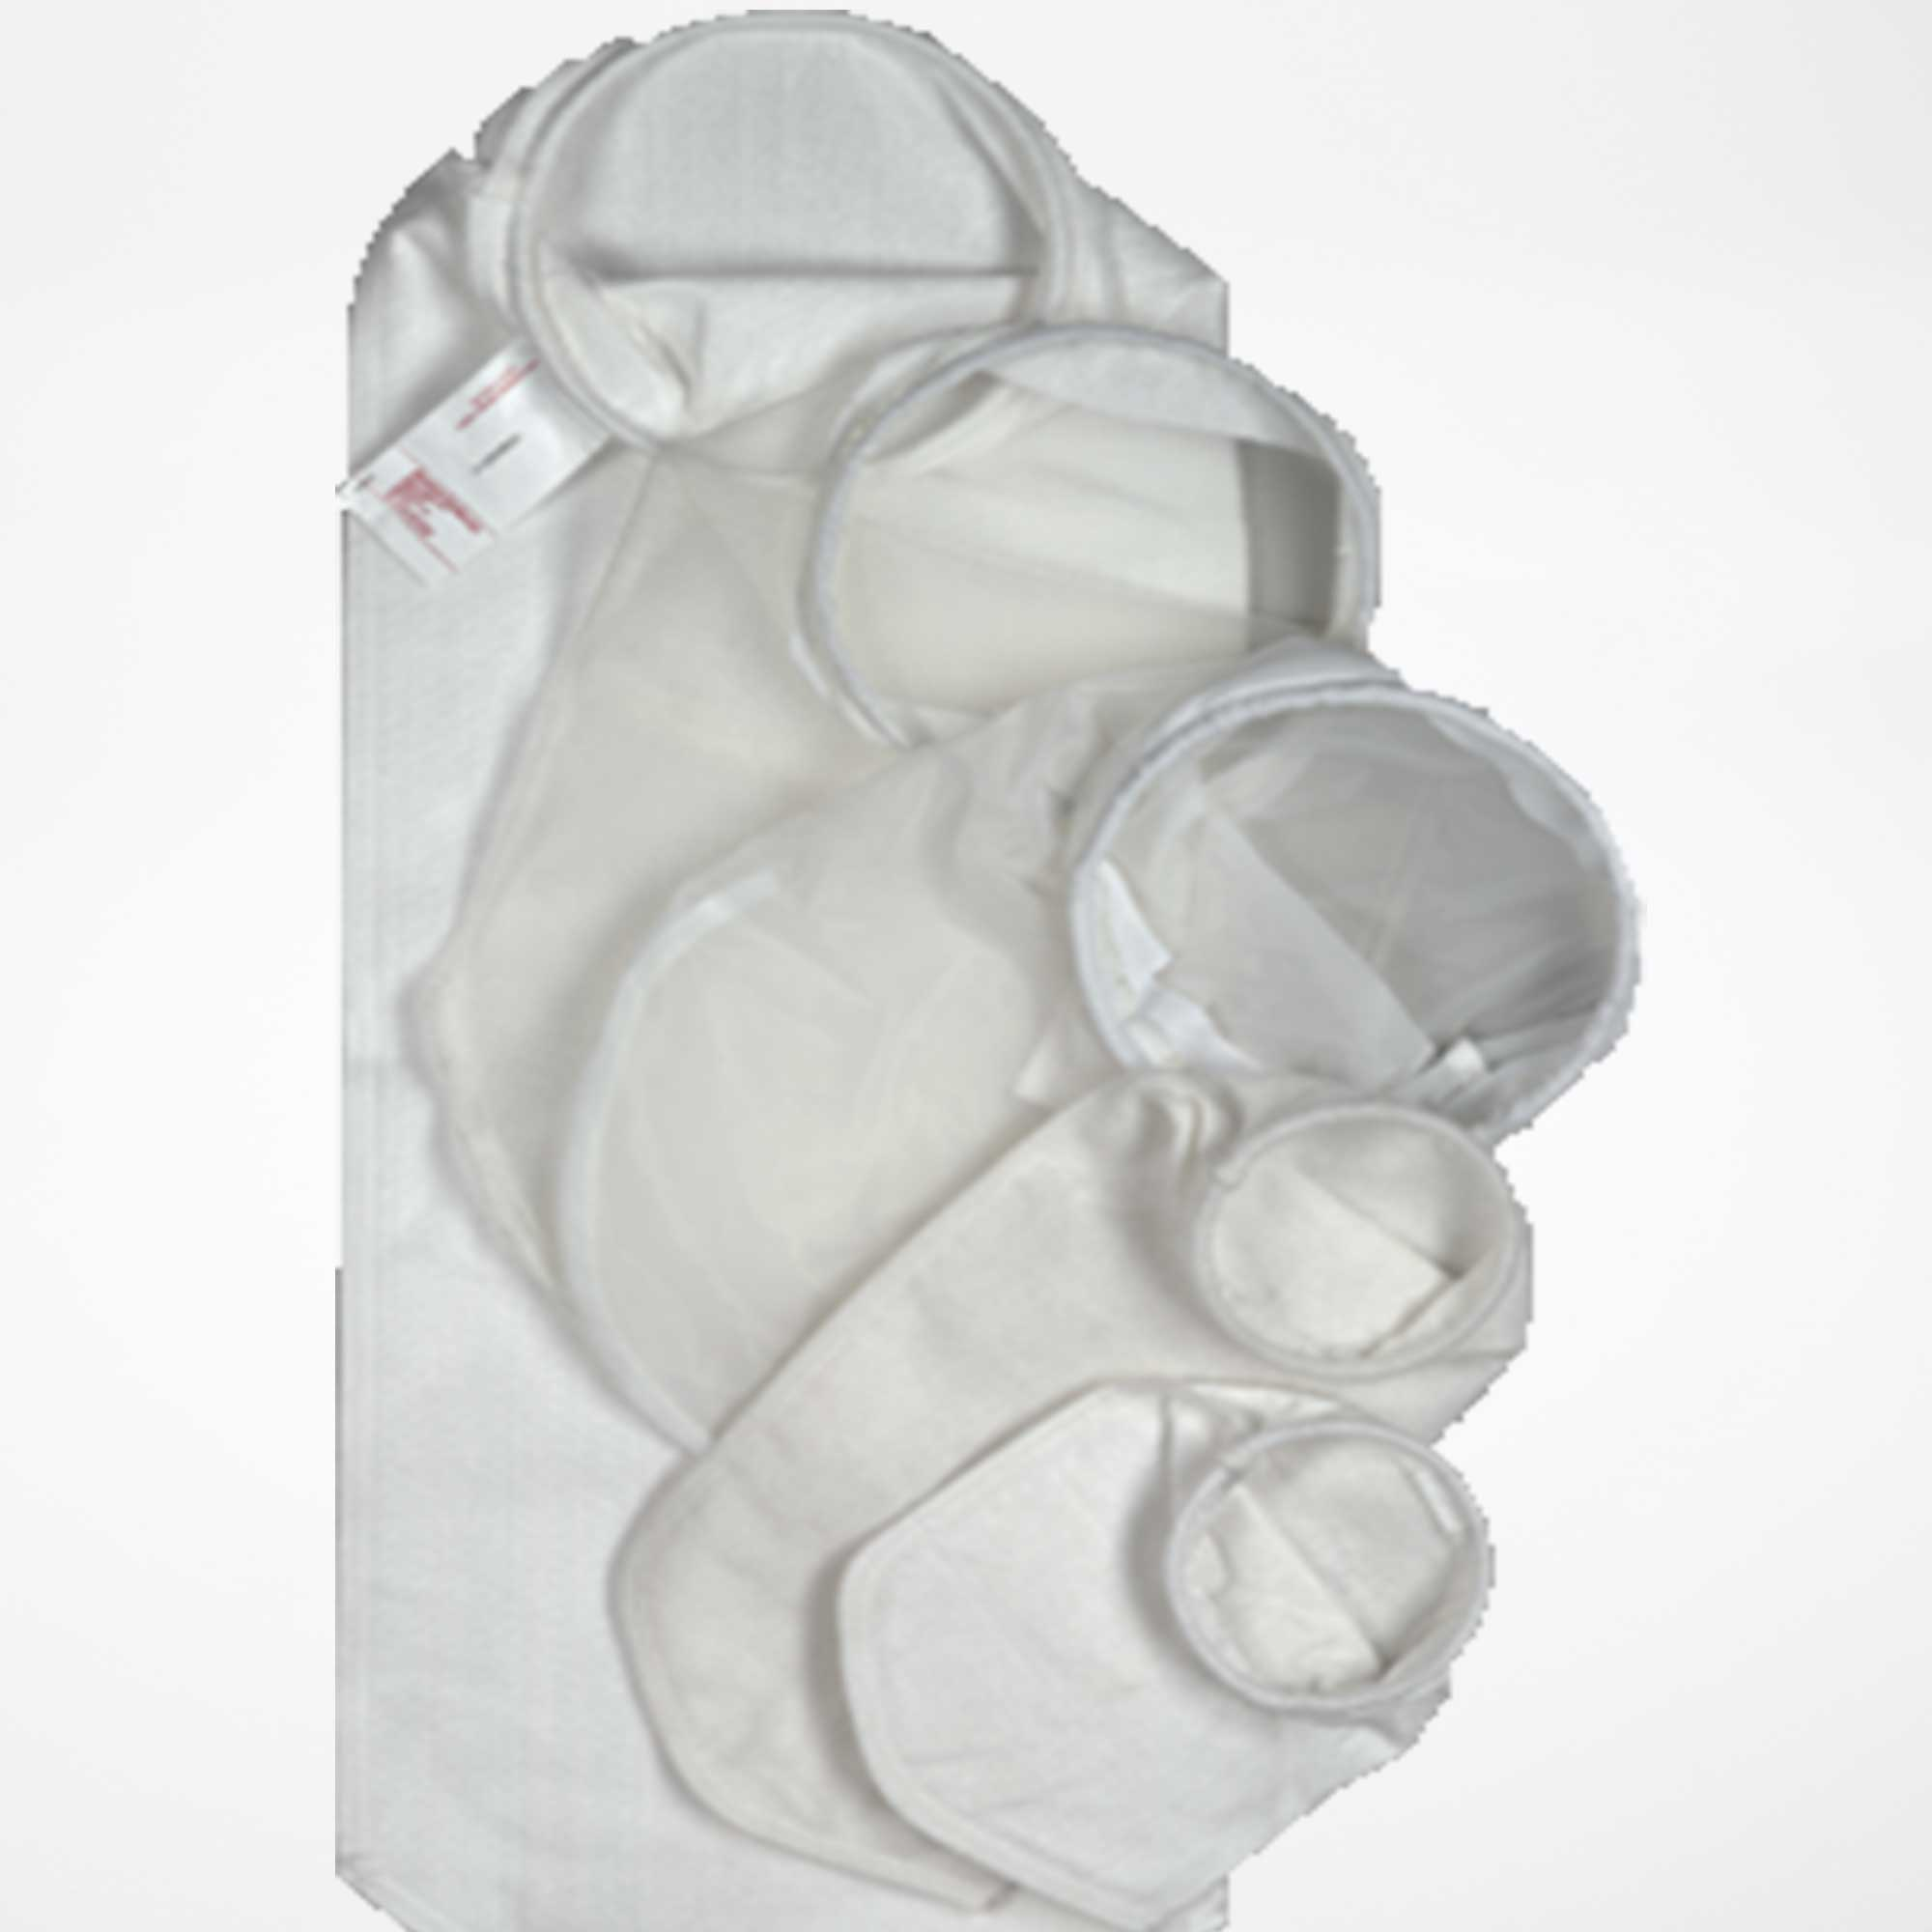 Group picture with filter bags for process filter housing